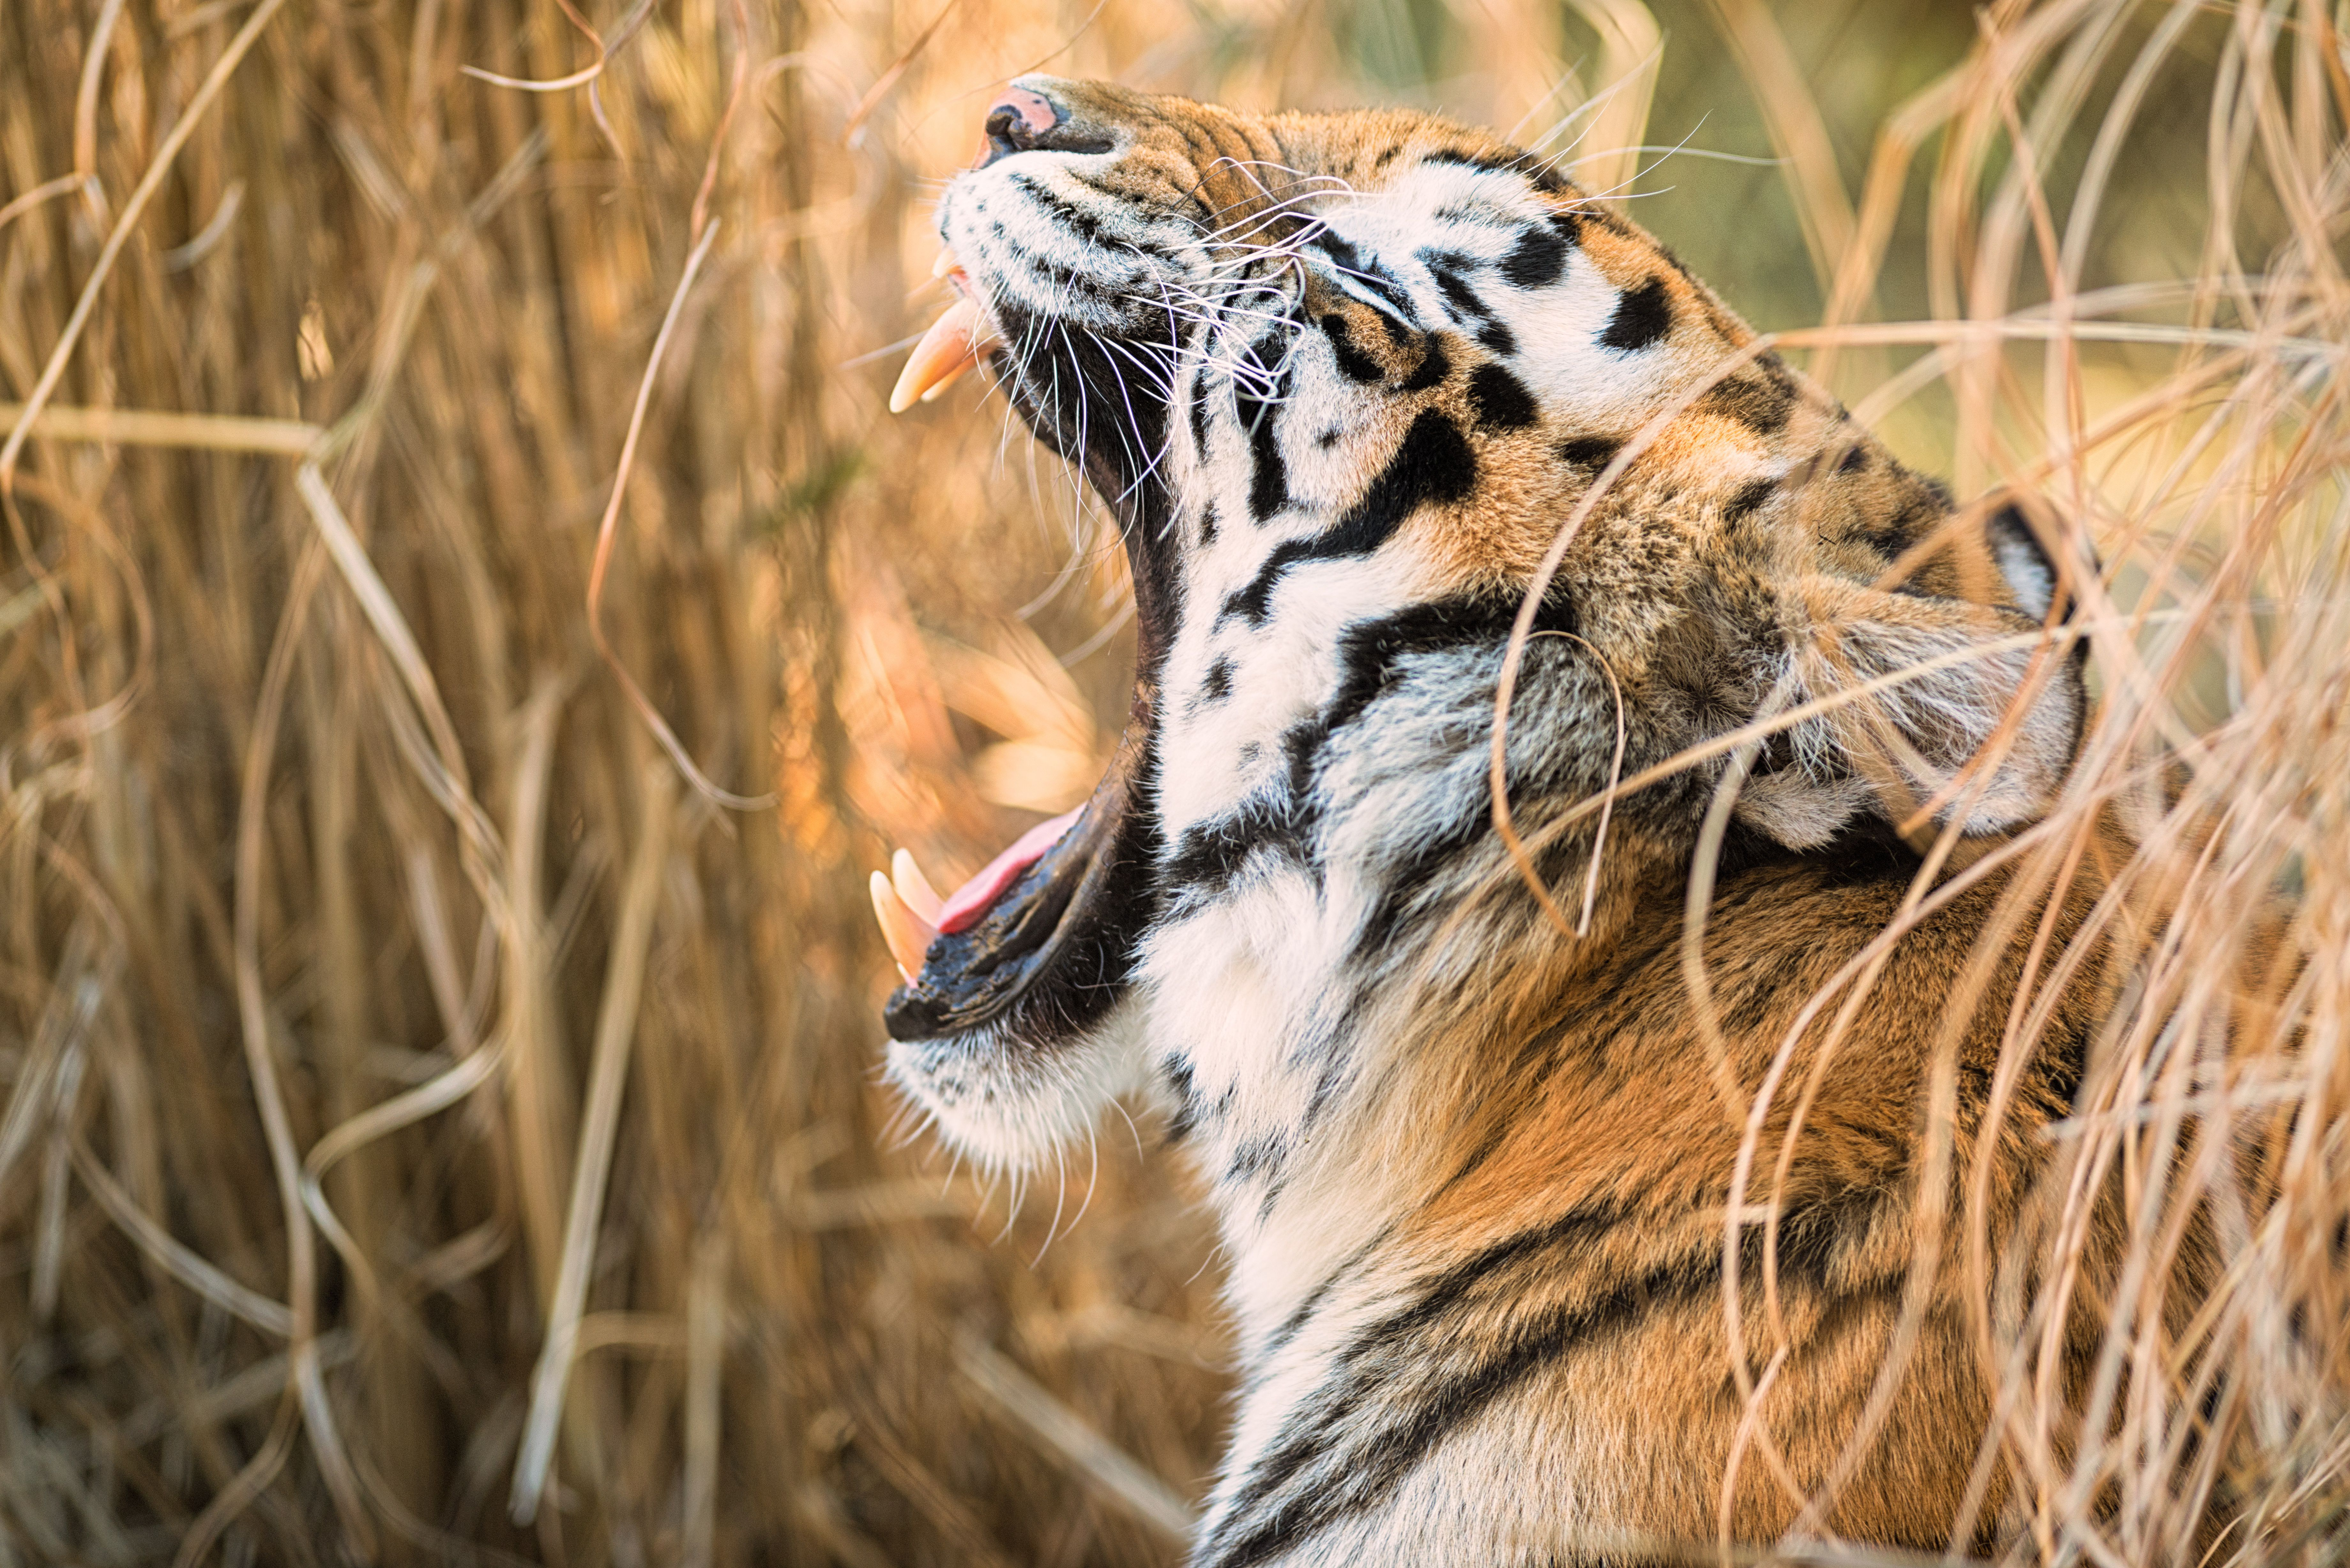 tiger open mouth 4k 1603014805 - Tiger Open Mouth 4k - Tiger Open Mouth 4k wallpapers